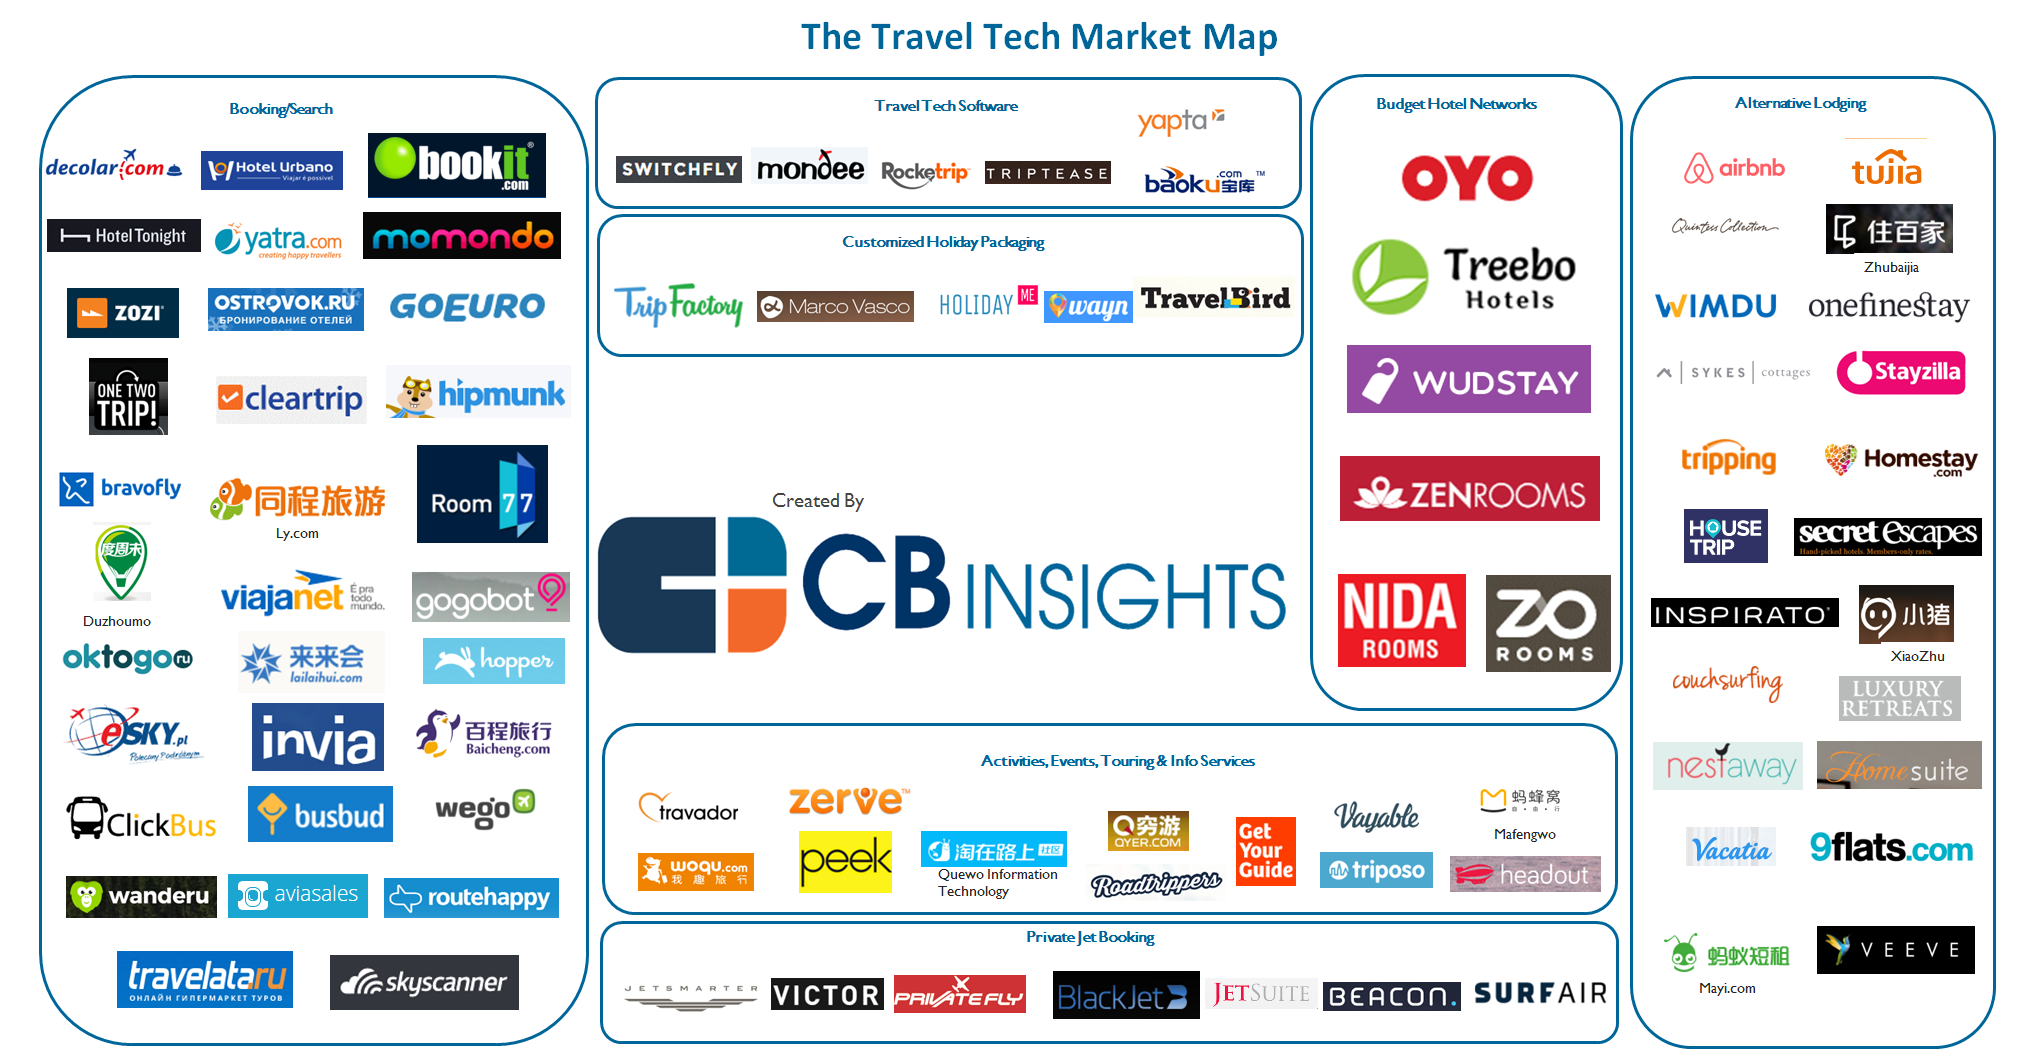 infographic_travel.tech_v4